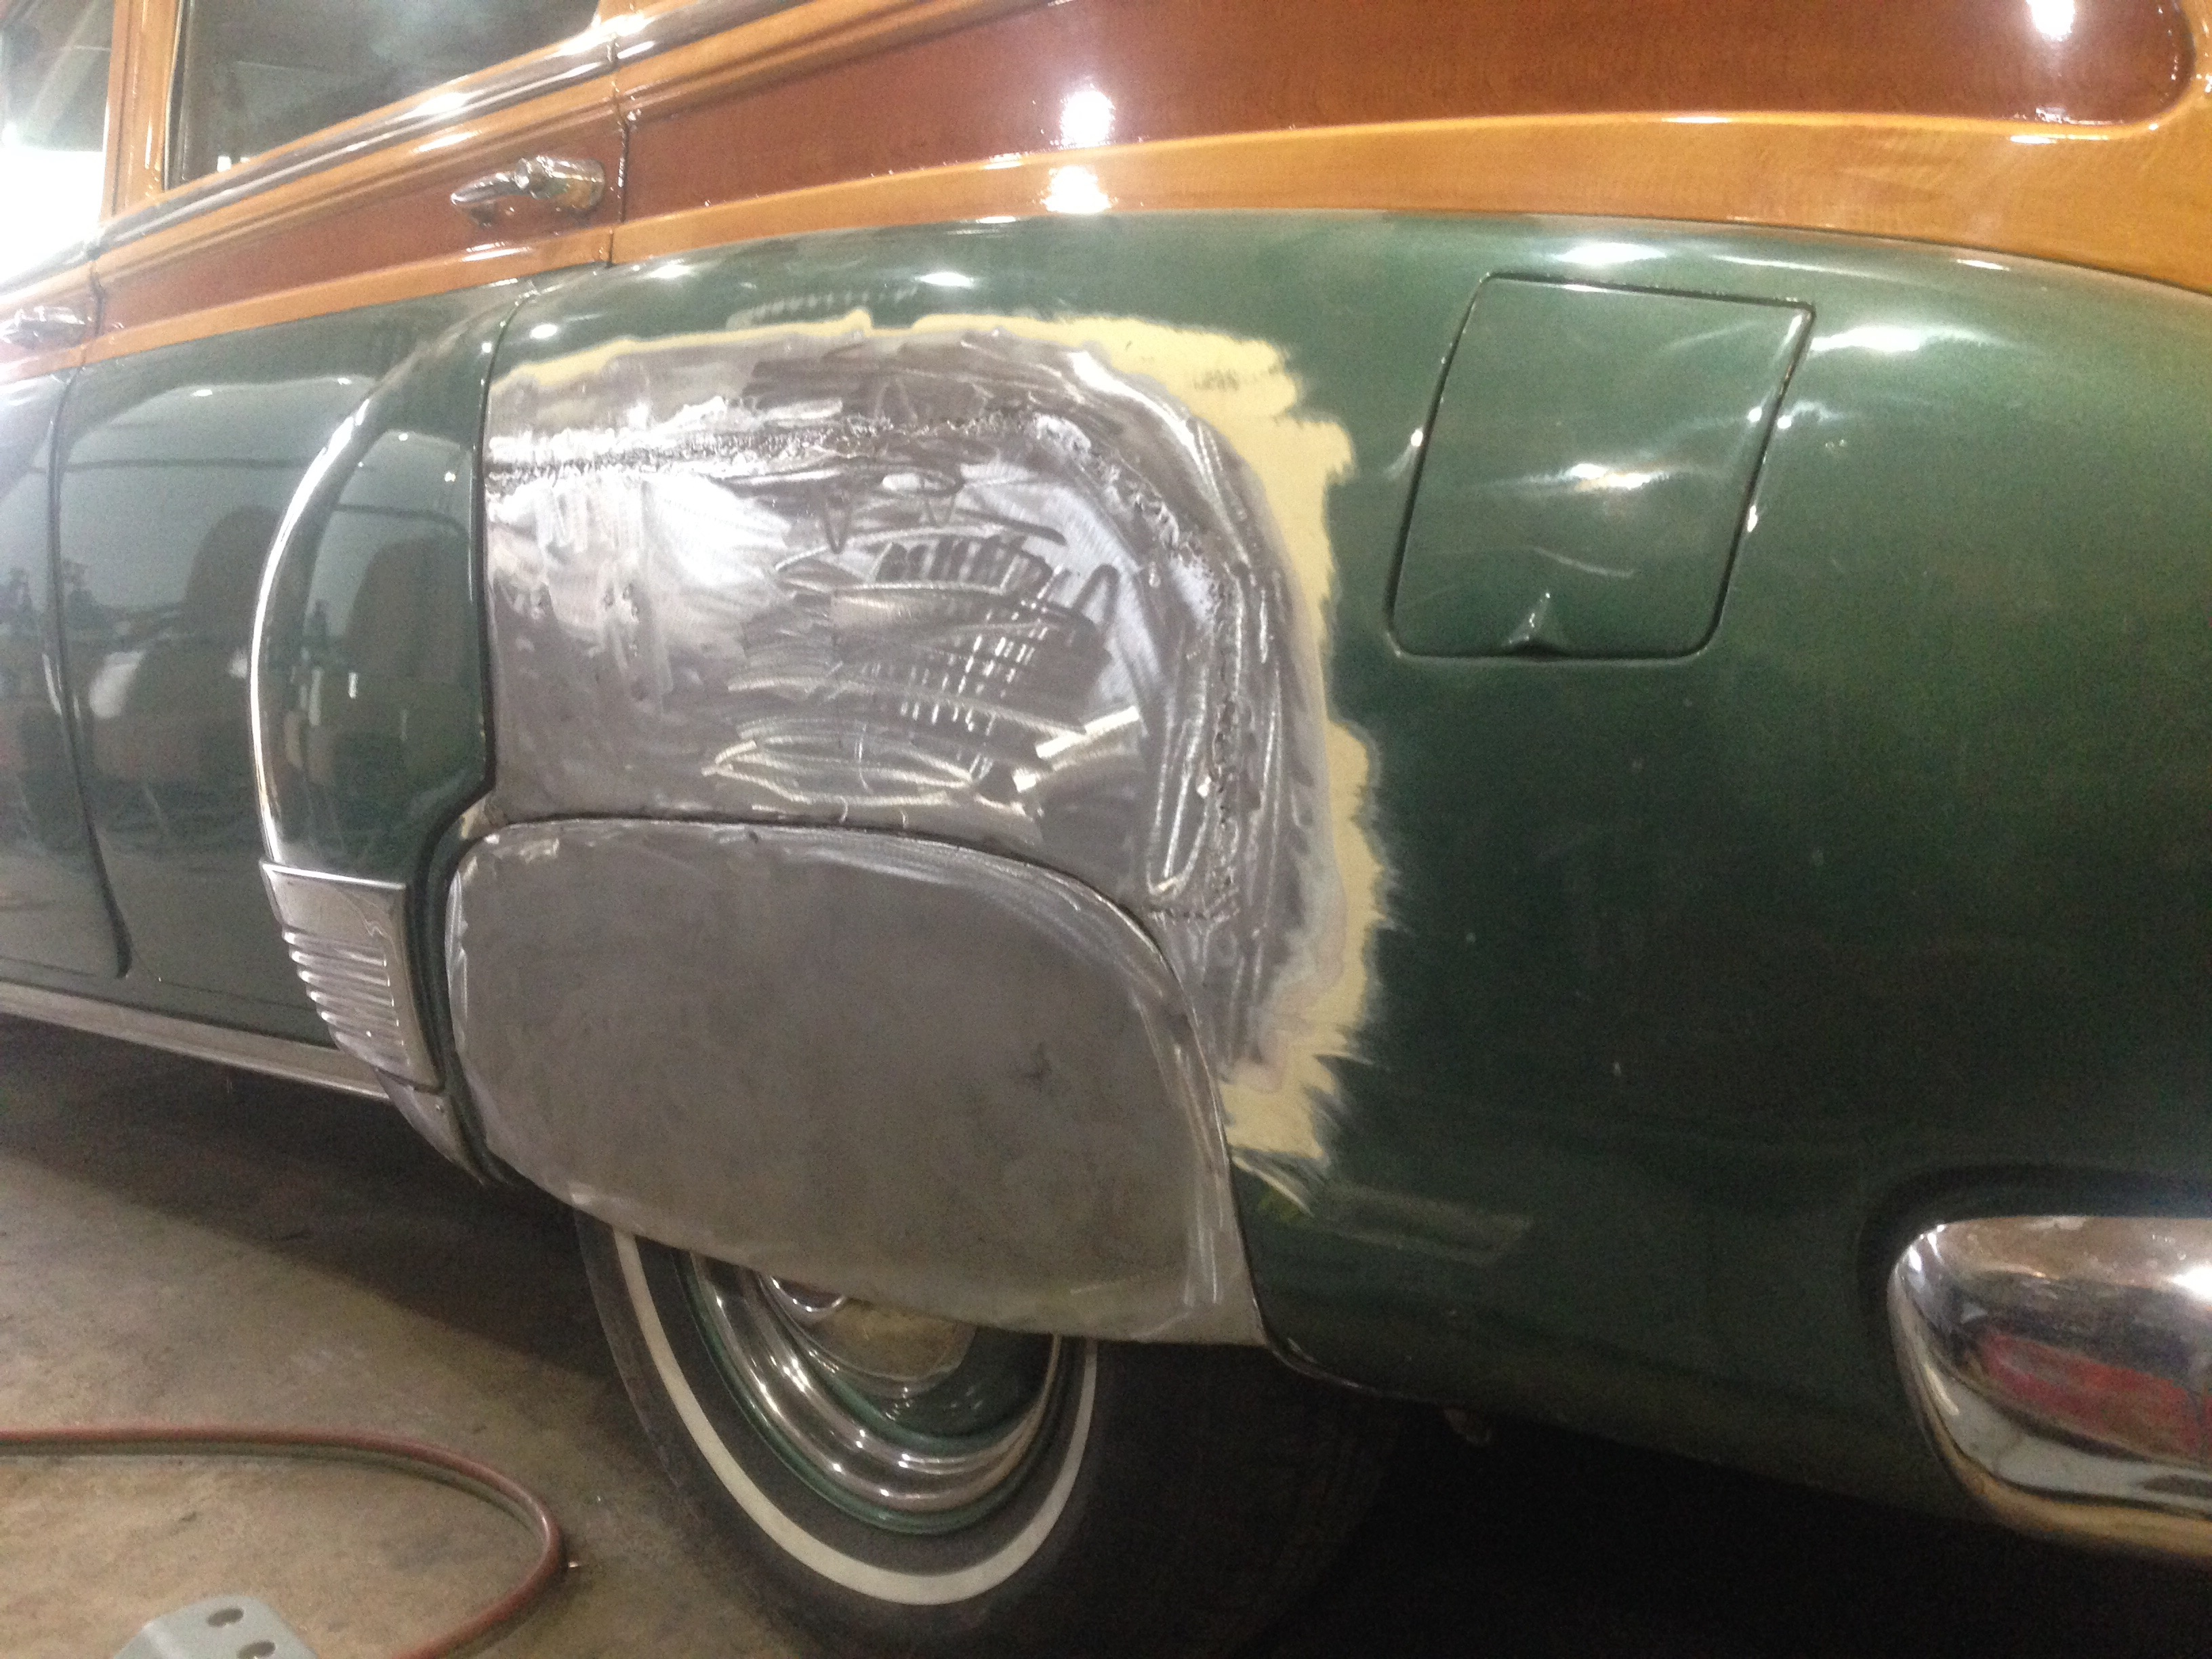 Cool Mccools Garage Whats Brian Cutting Up Today Page 2 Help Old Style Chrome Clamp On Turn Signal The Hamb And Doors Were Rusty Too